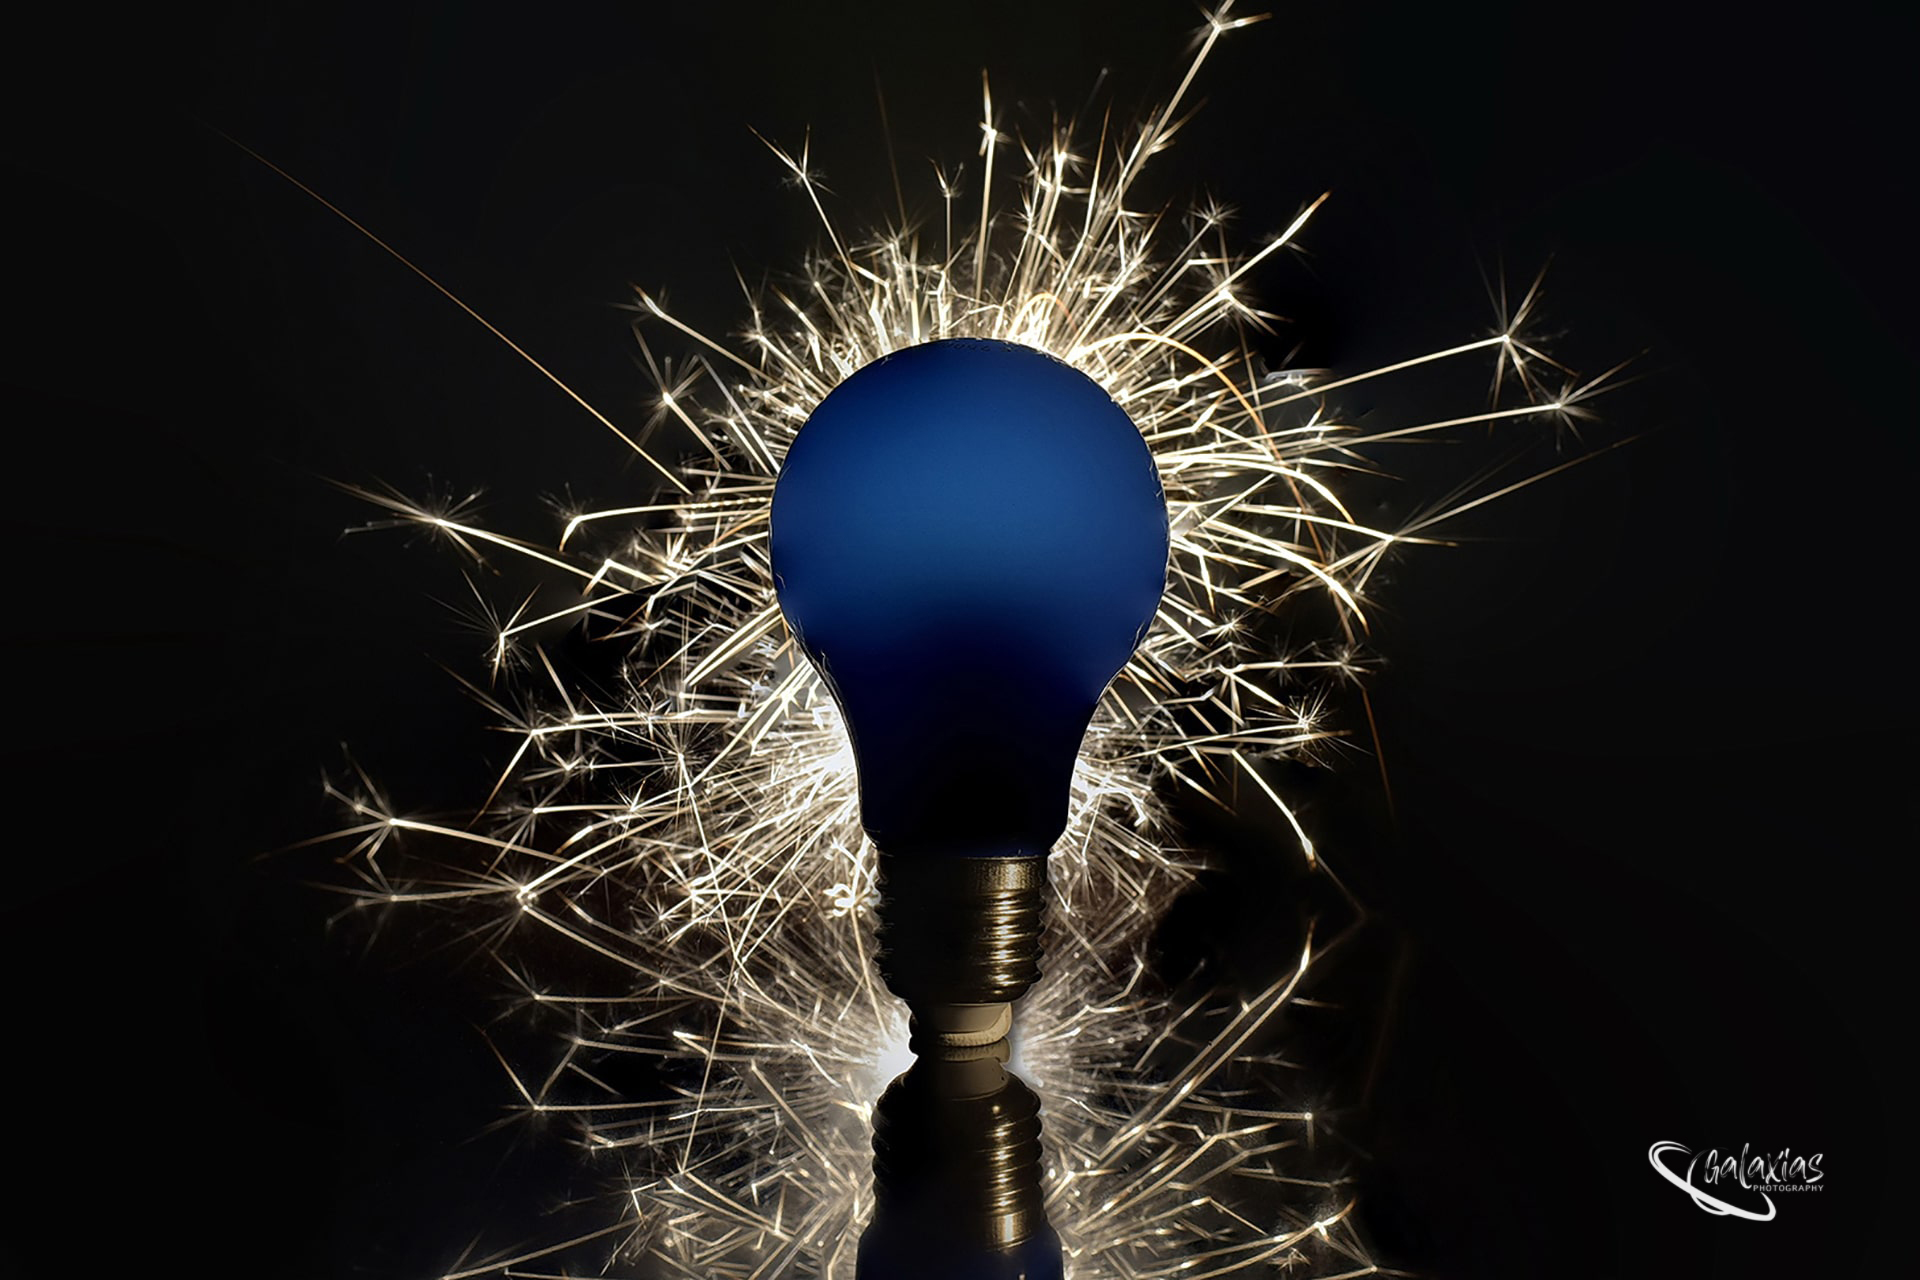 Light bulb sparks special effect, photographed by Galaxias Photography, Pretoria East, South Africa